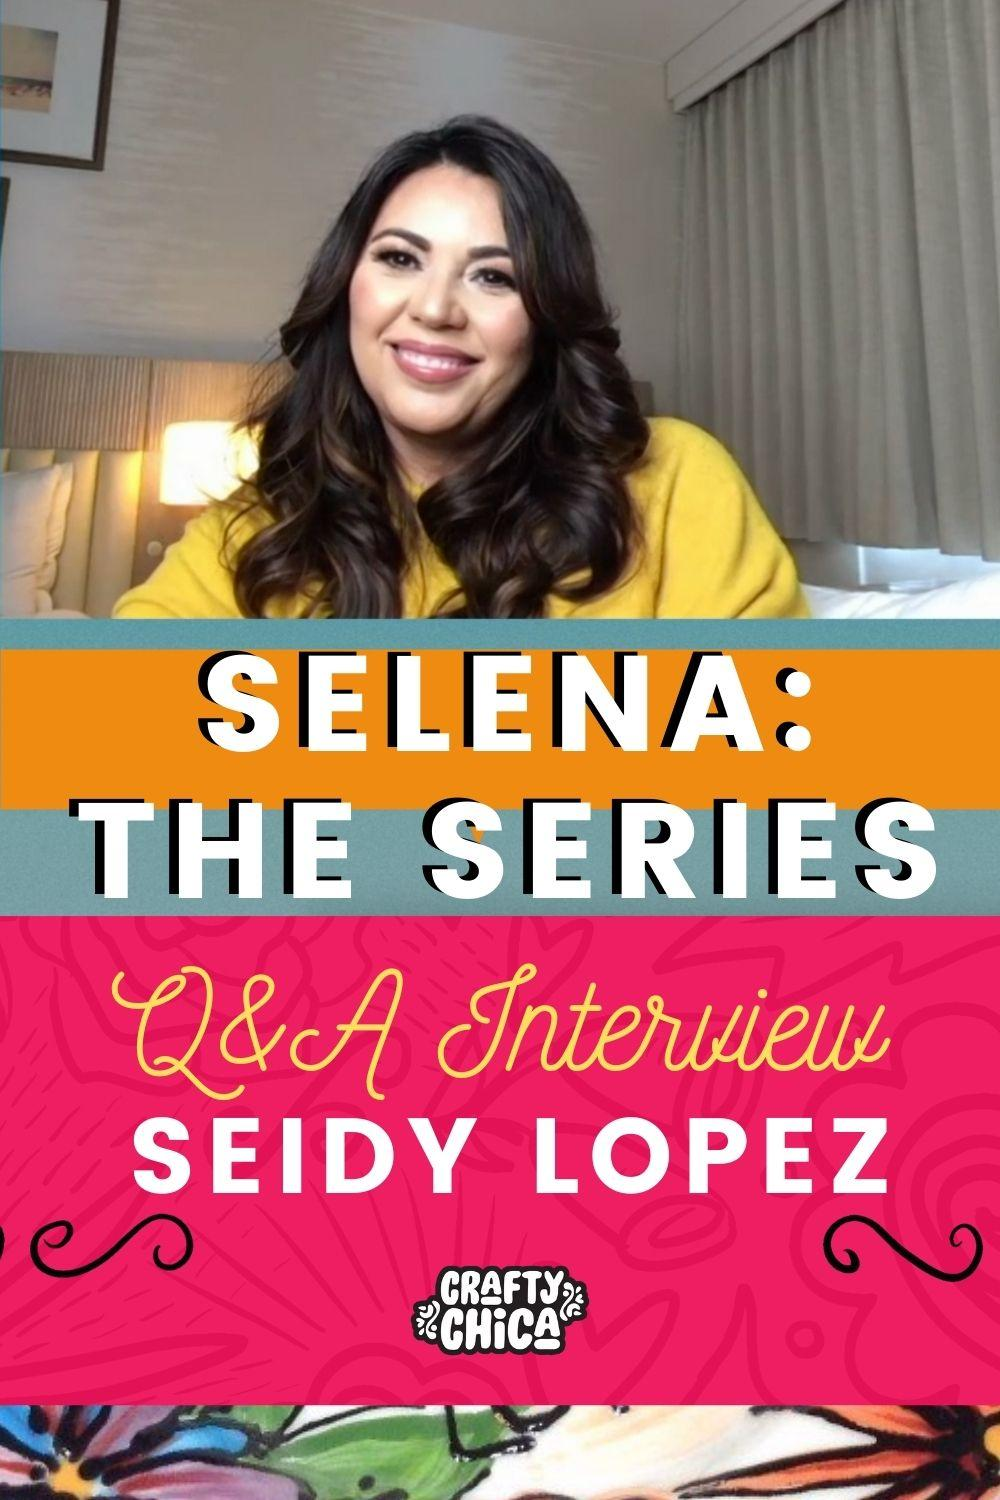 Selena: The Series, Seidy Lopez interview